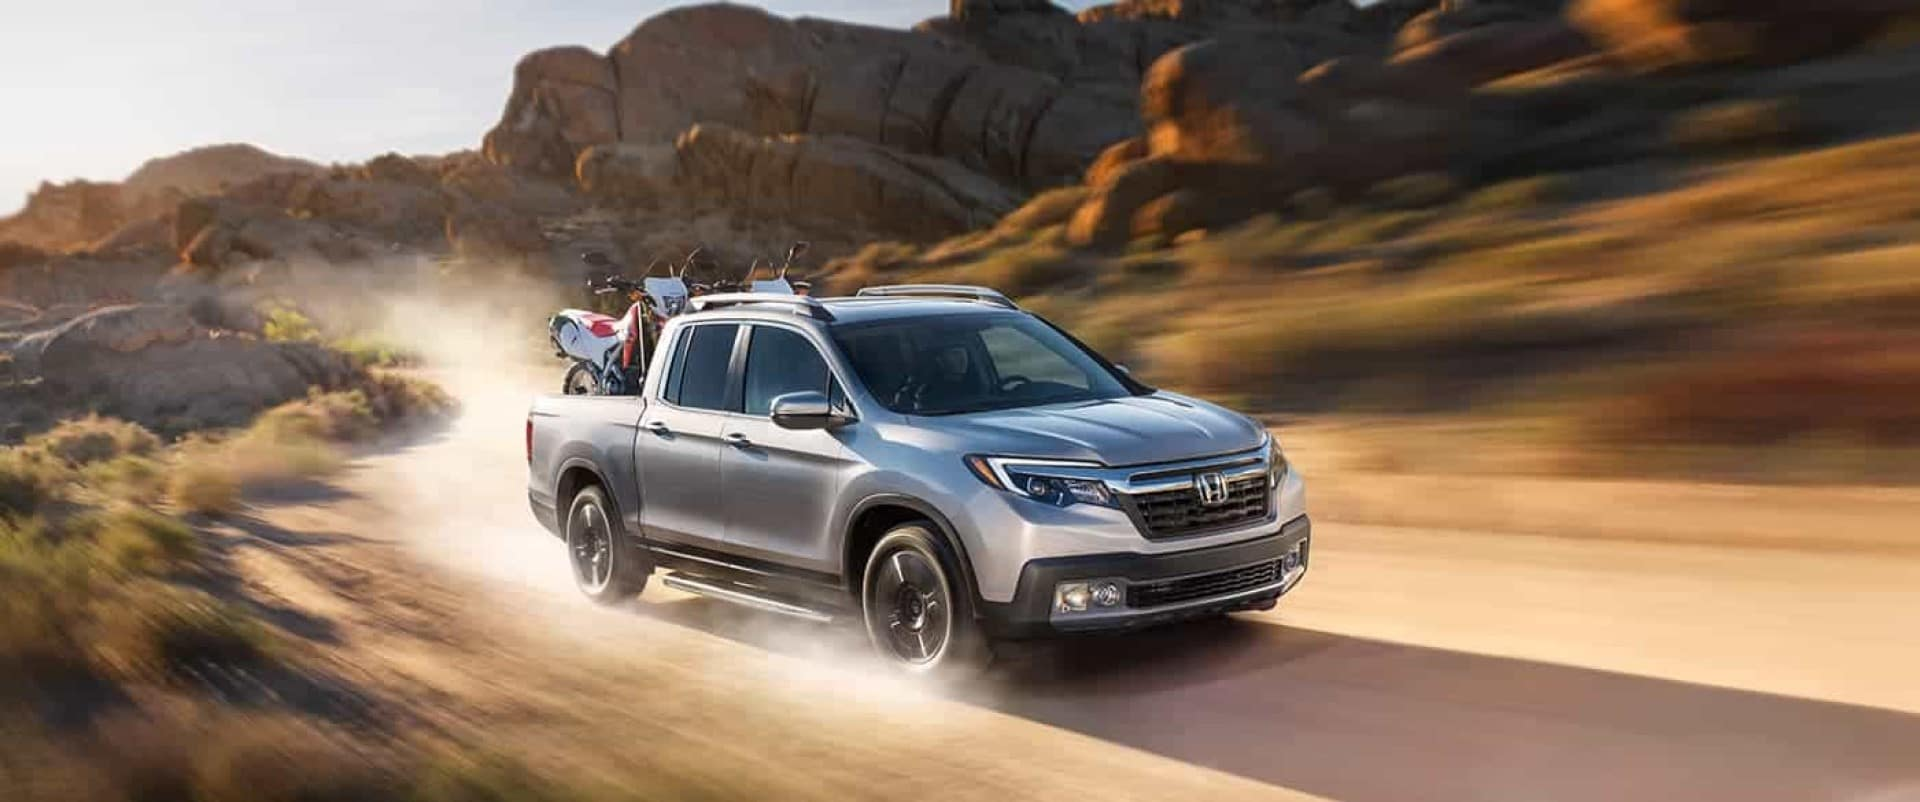 Honda_Ridgeline_Driving_On_Dirt_Road